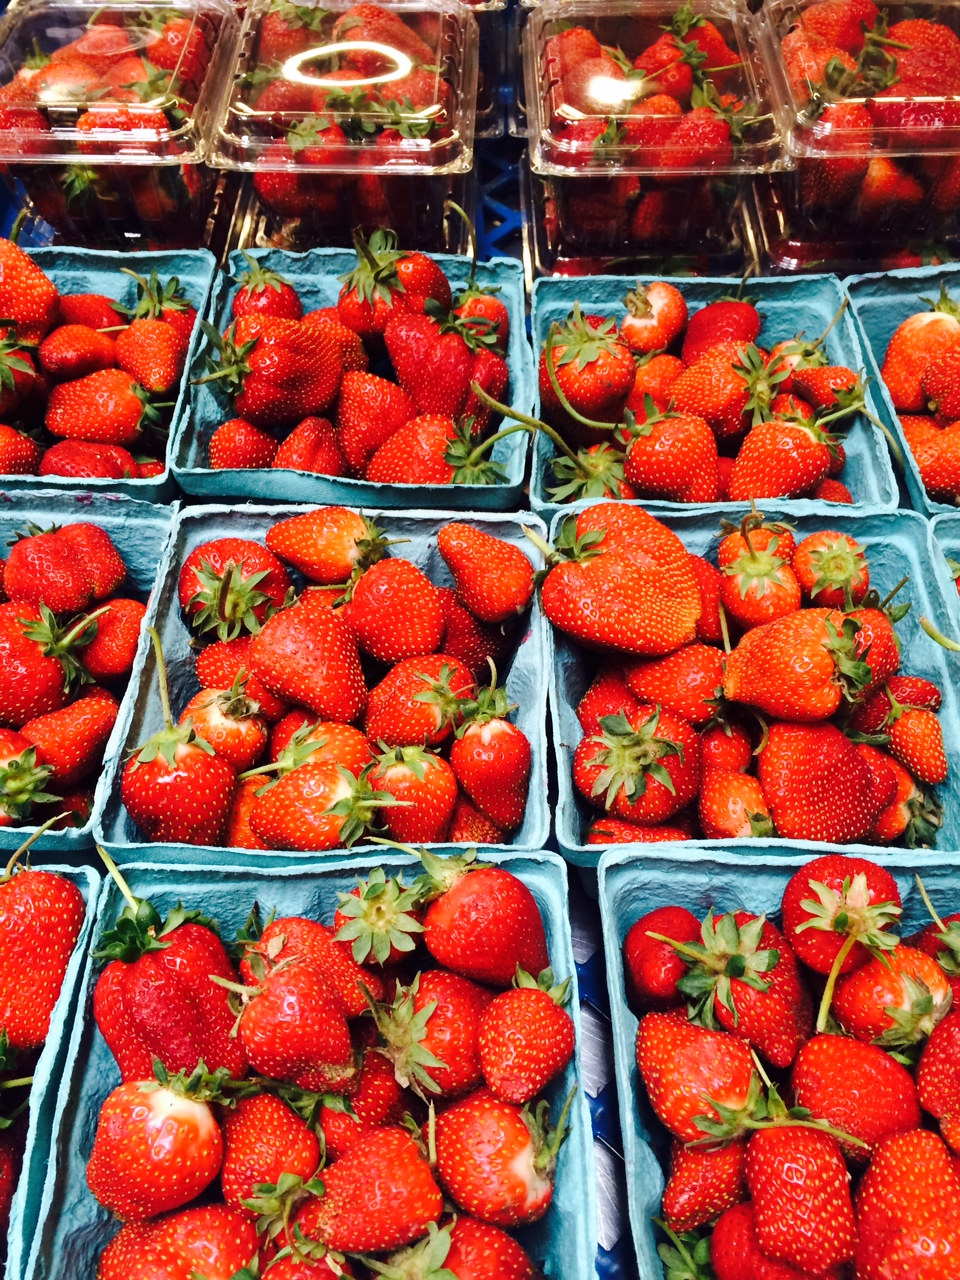 Our organically grown strawberries. Once you taste them, you'll never be satisfied with store bought berries again!